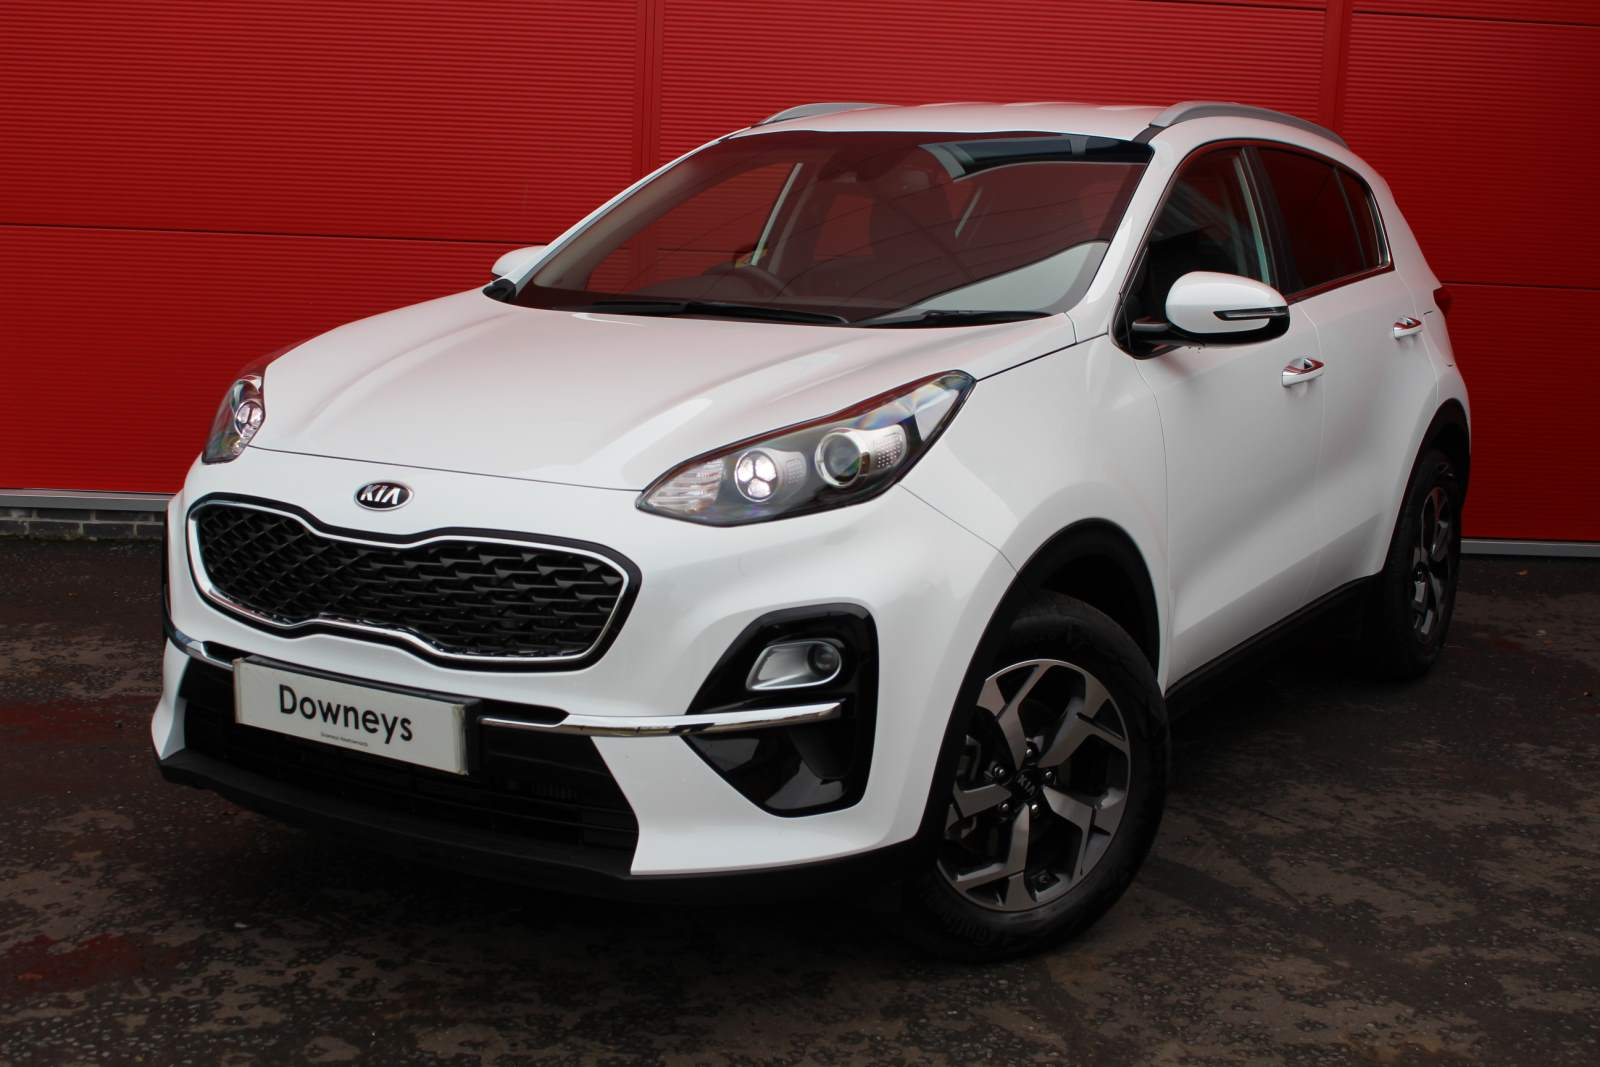 Kia SPORTAGE 2 1.6 CRDI ISG MHEV FULL KIA WARRANTY UNTIL JULY 2027